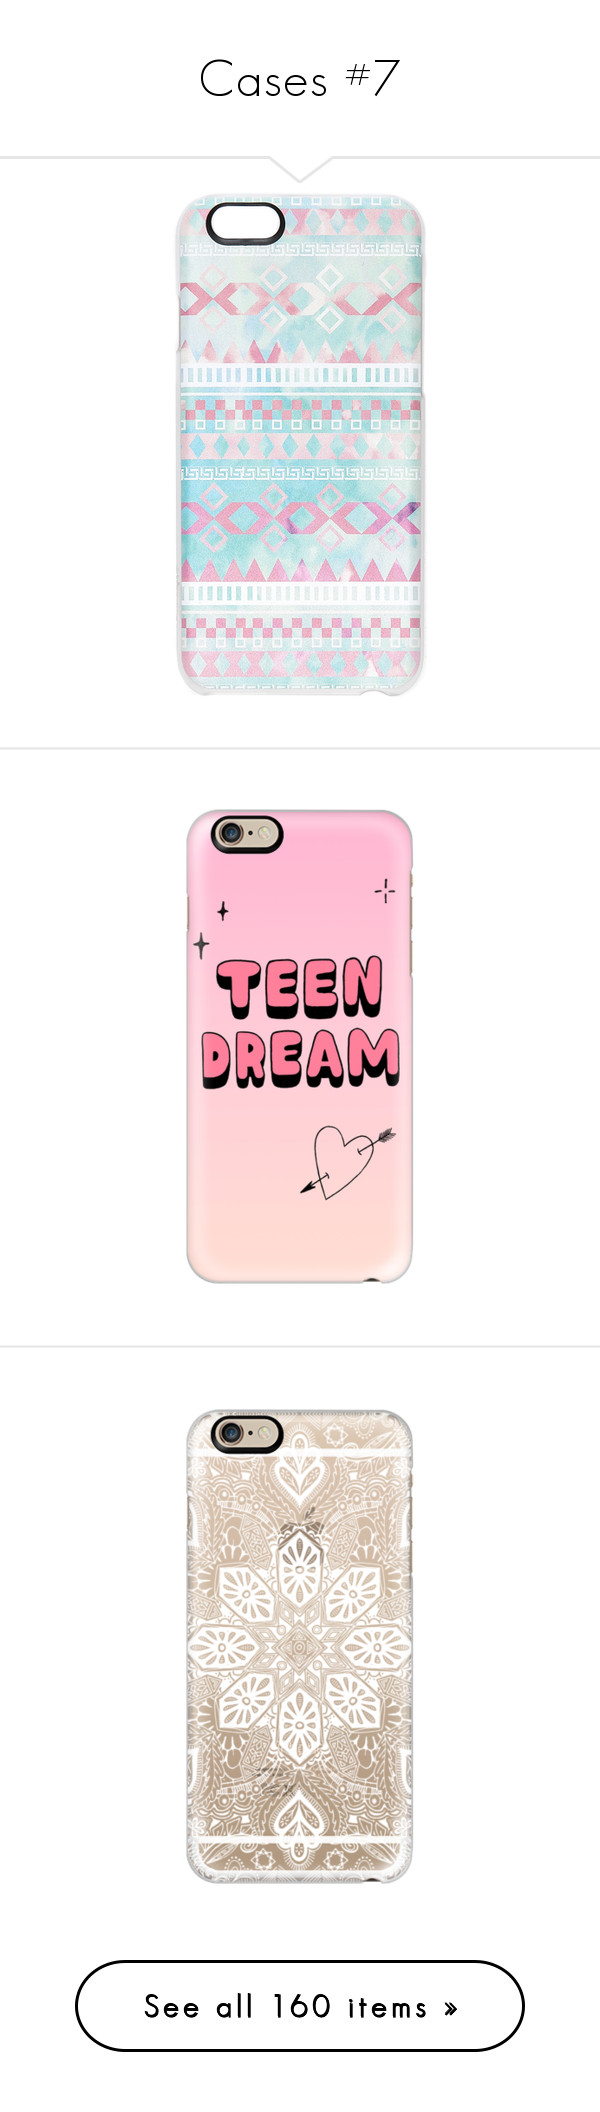 """""""Cases #7"""" by vanessa-m-108 ❤ liked on Polyvore featuring accessories, tech accessories, phone cases, phone, watercolor, iphone cases, apple iphone case, iphone hard case, iphone cover case and iphone case"""